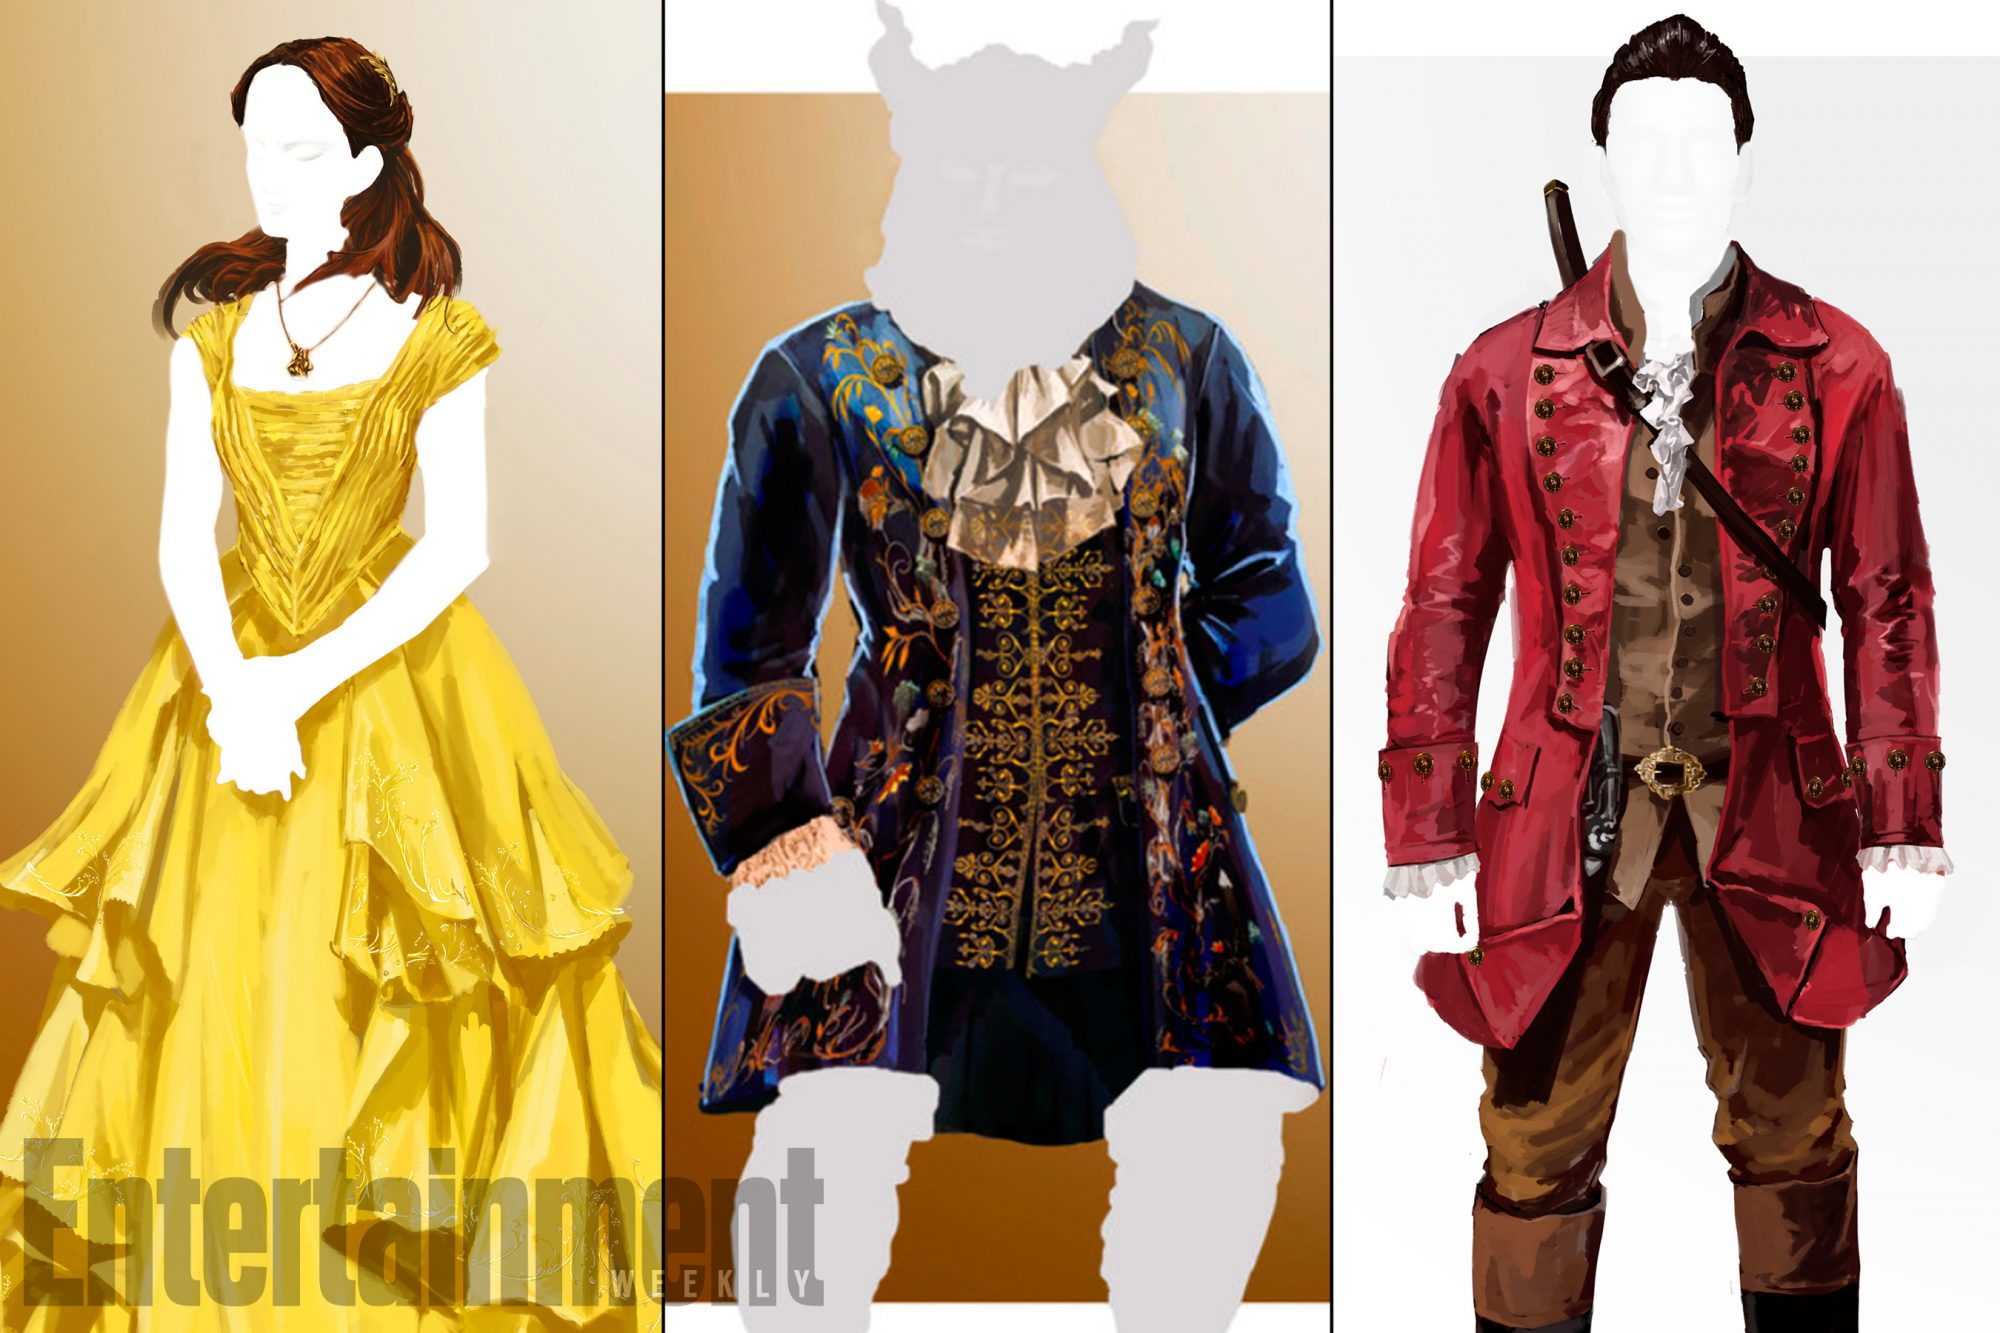 beauty-and-the-beast-fashion-image-tout